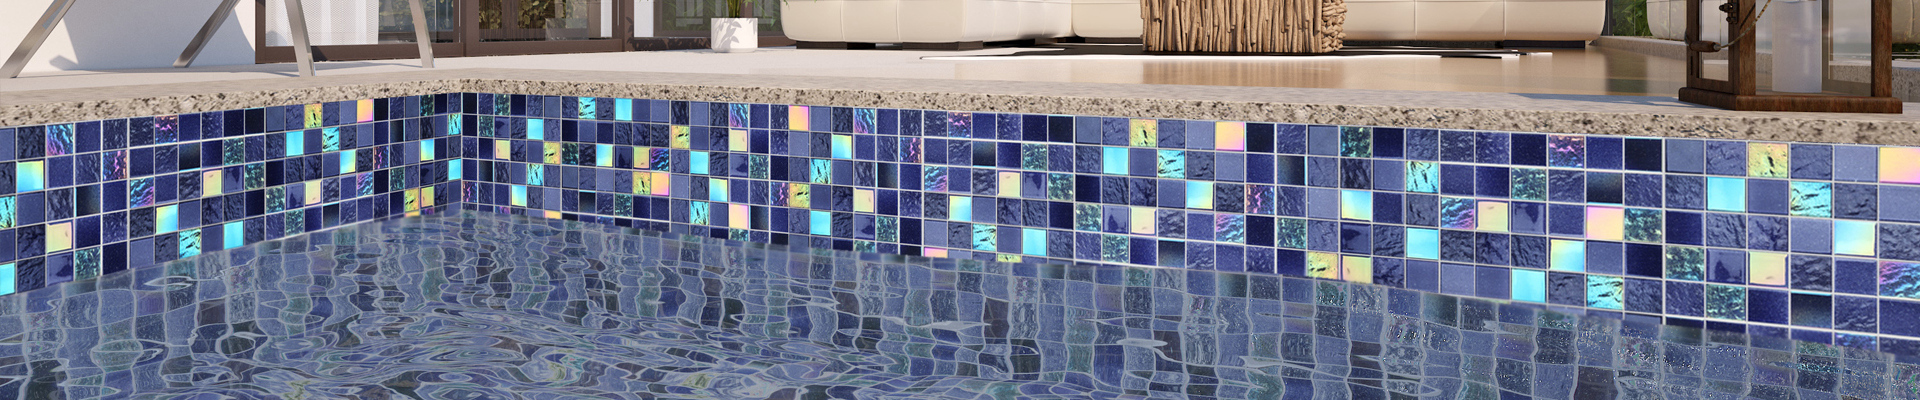 product-swimming pool mosaic-Heng Xing-img